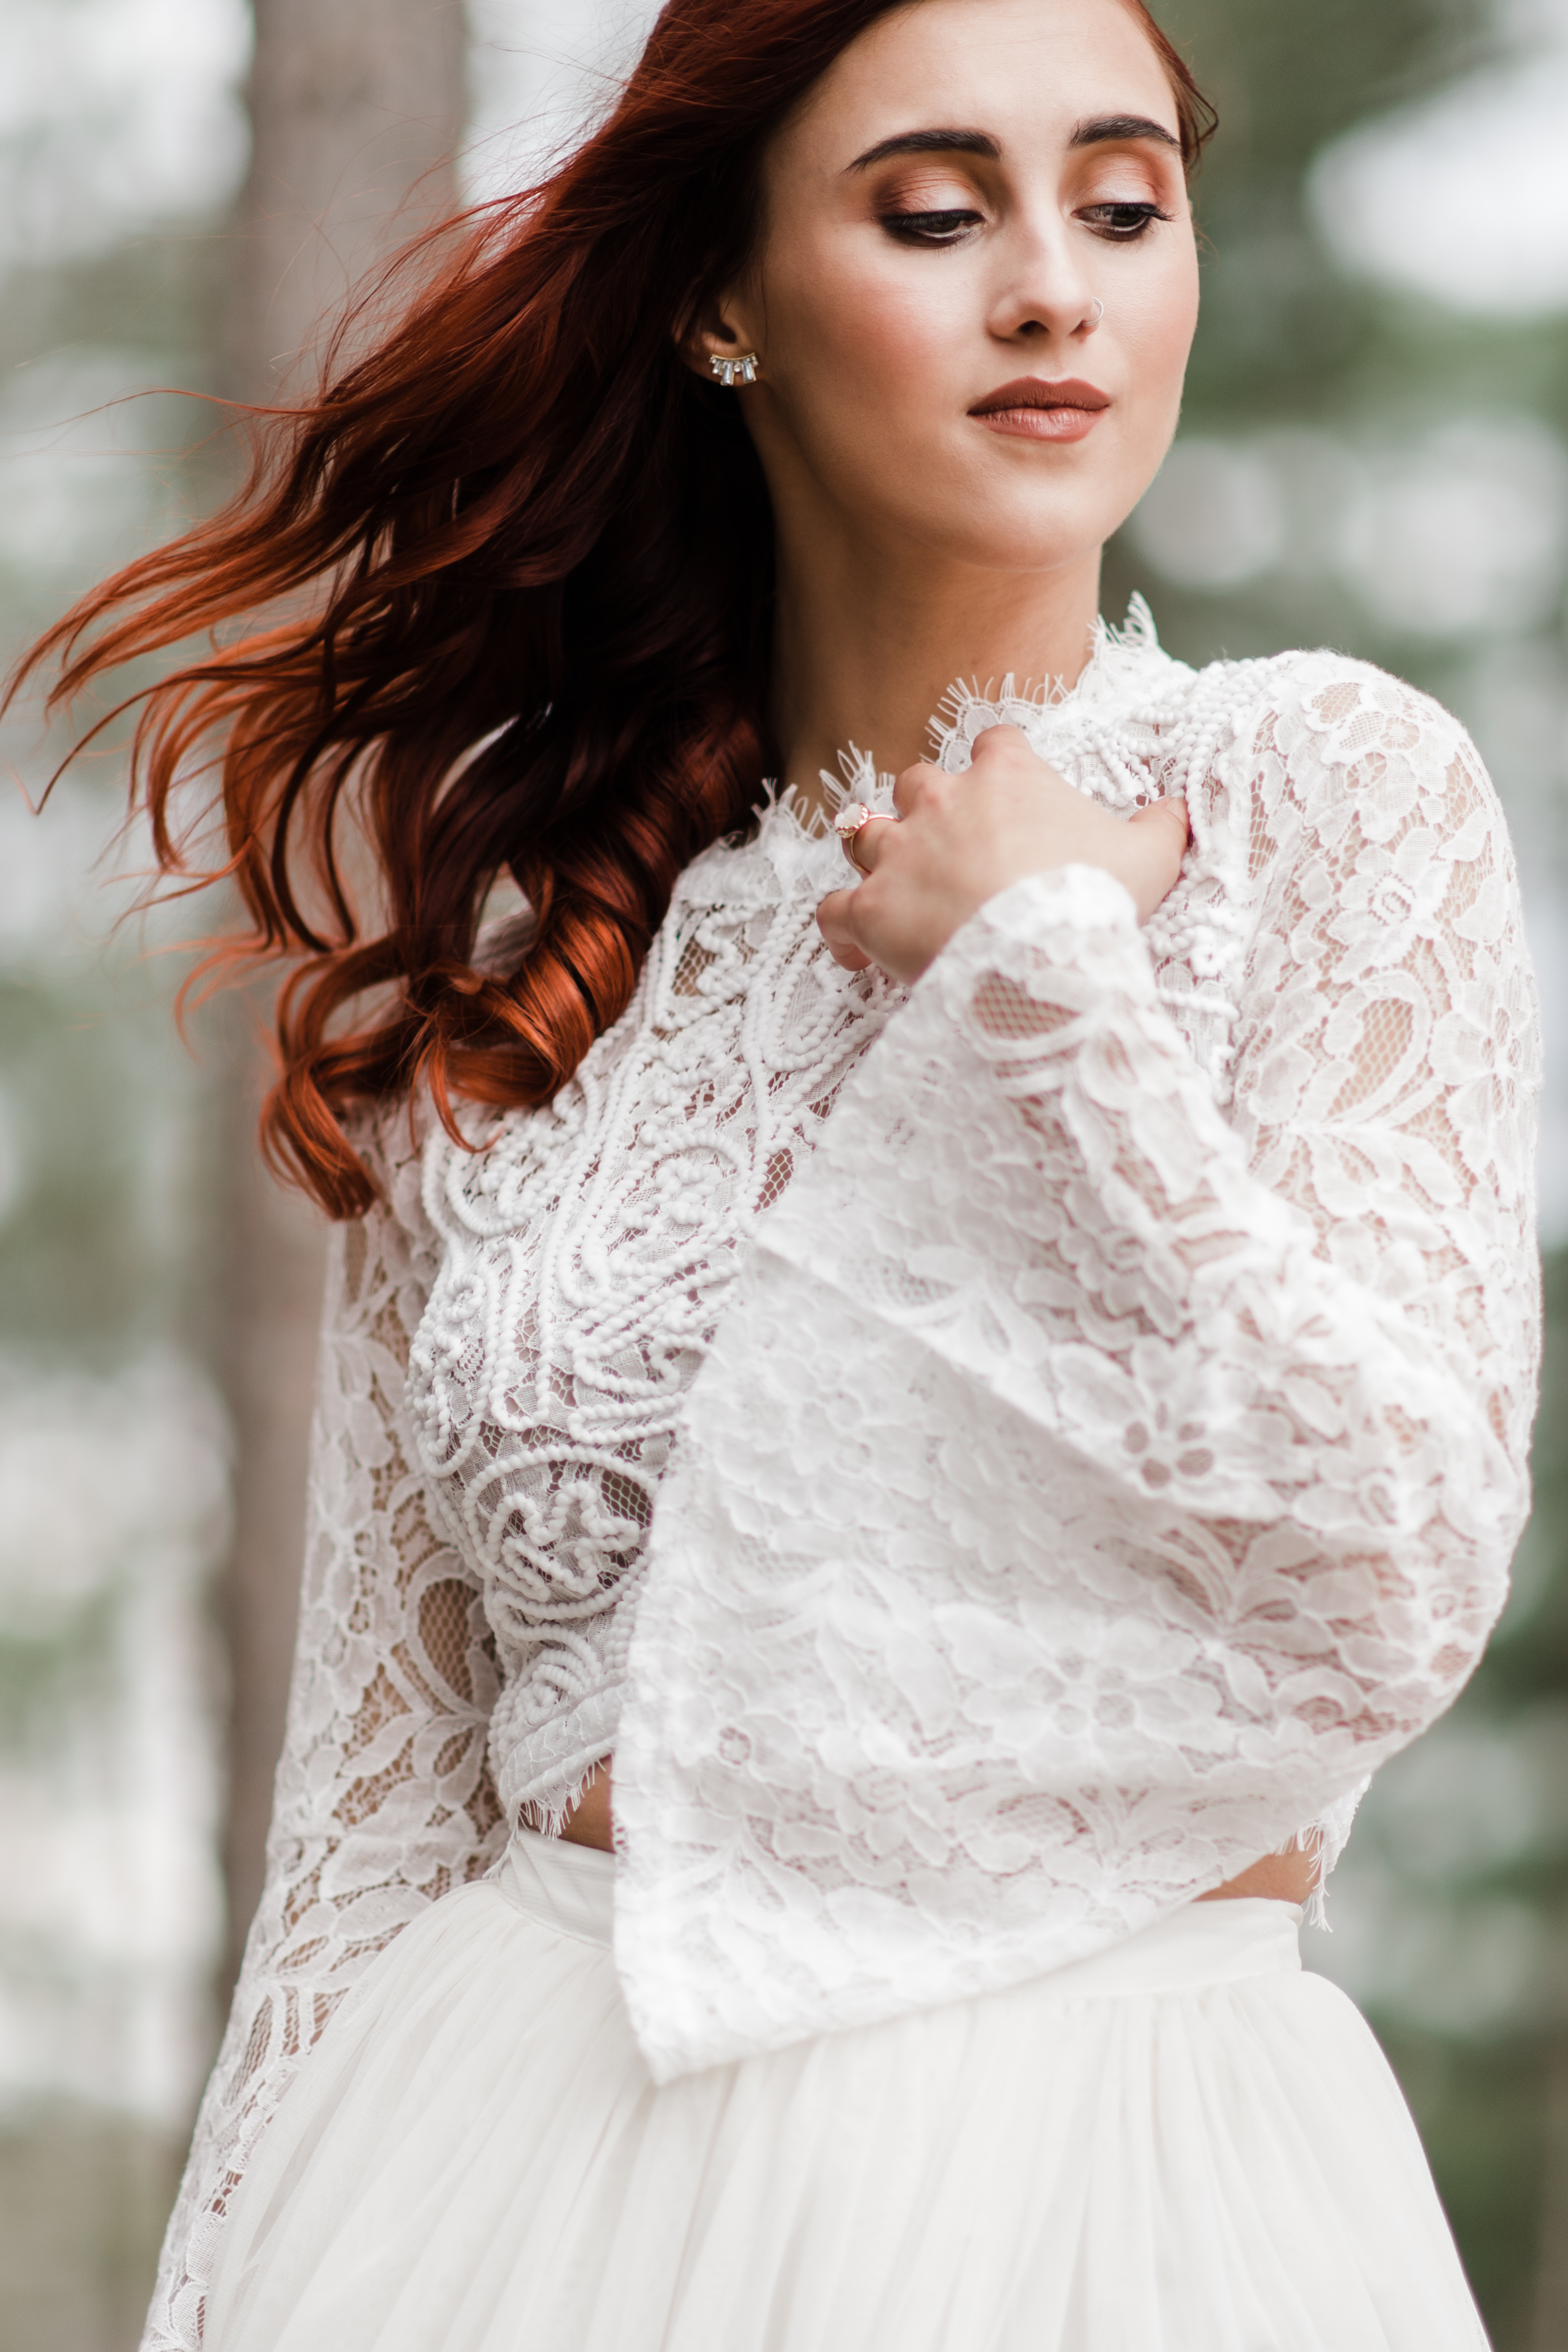 Bride in lace and beaded crop top with red curly hair blowing in the wind and hand softly on her heart and looking down over her shoulder.